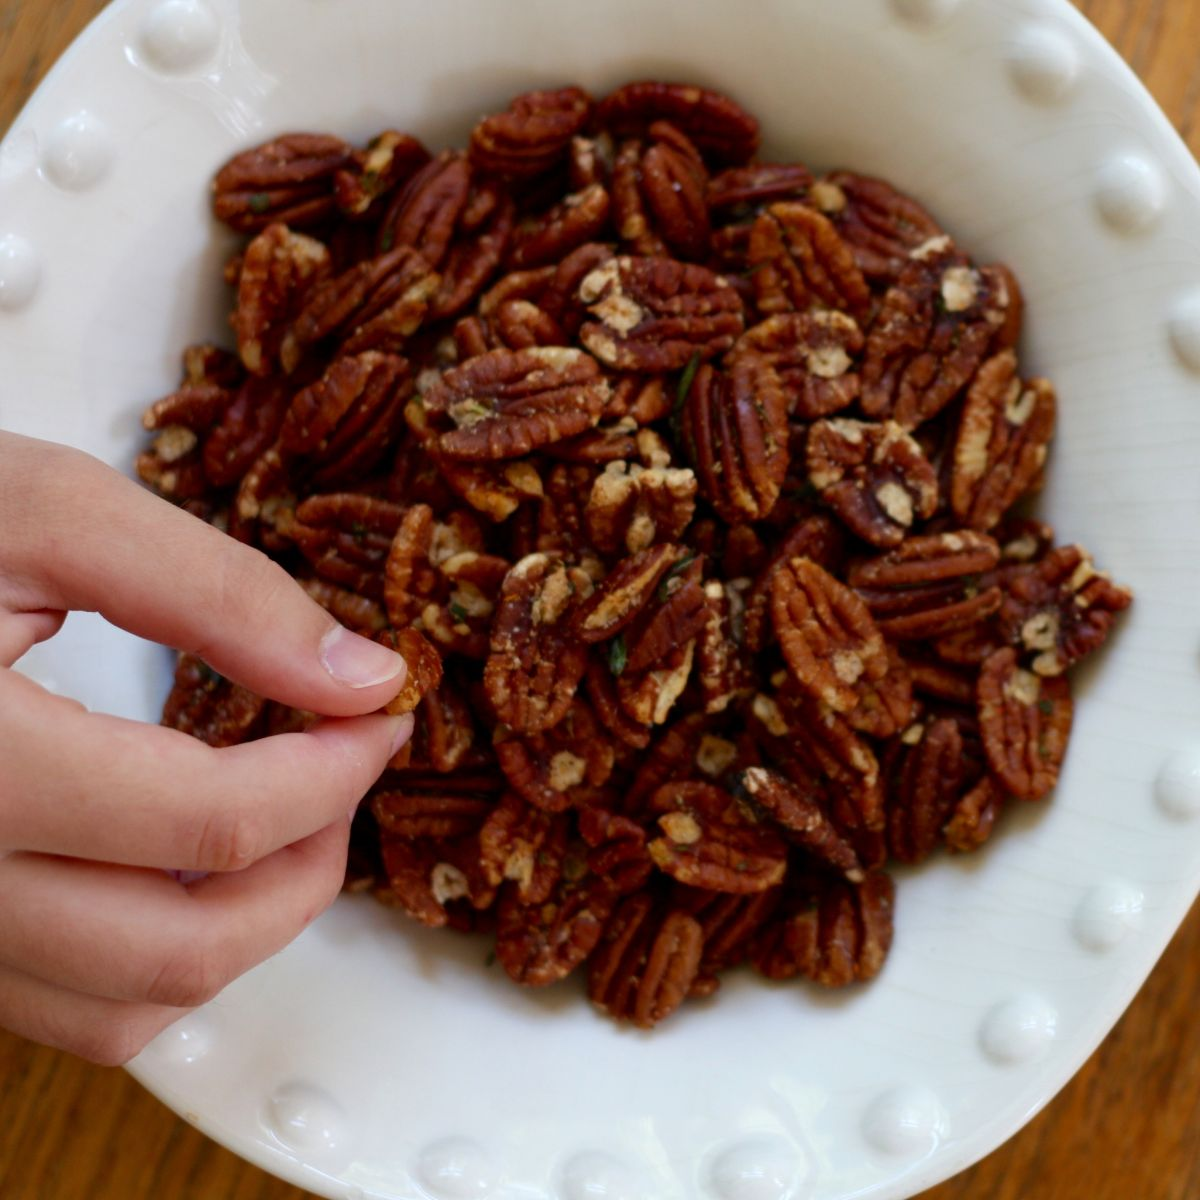 Rosemary-Roasted Pecans